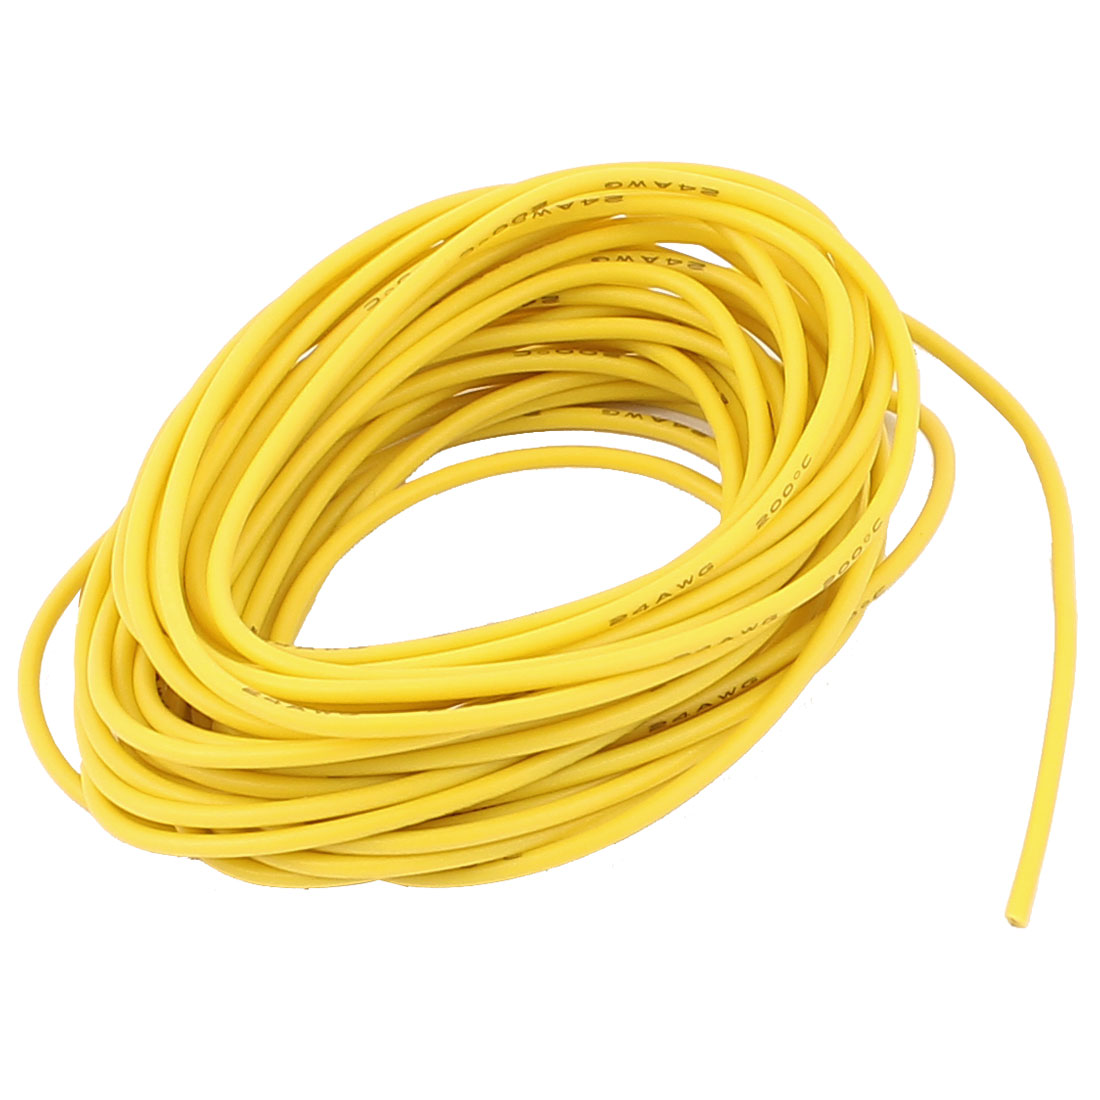 5M 24AWG Electric Copper Core Flexible Silicone Wire Cable Yellow